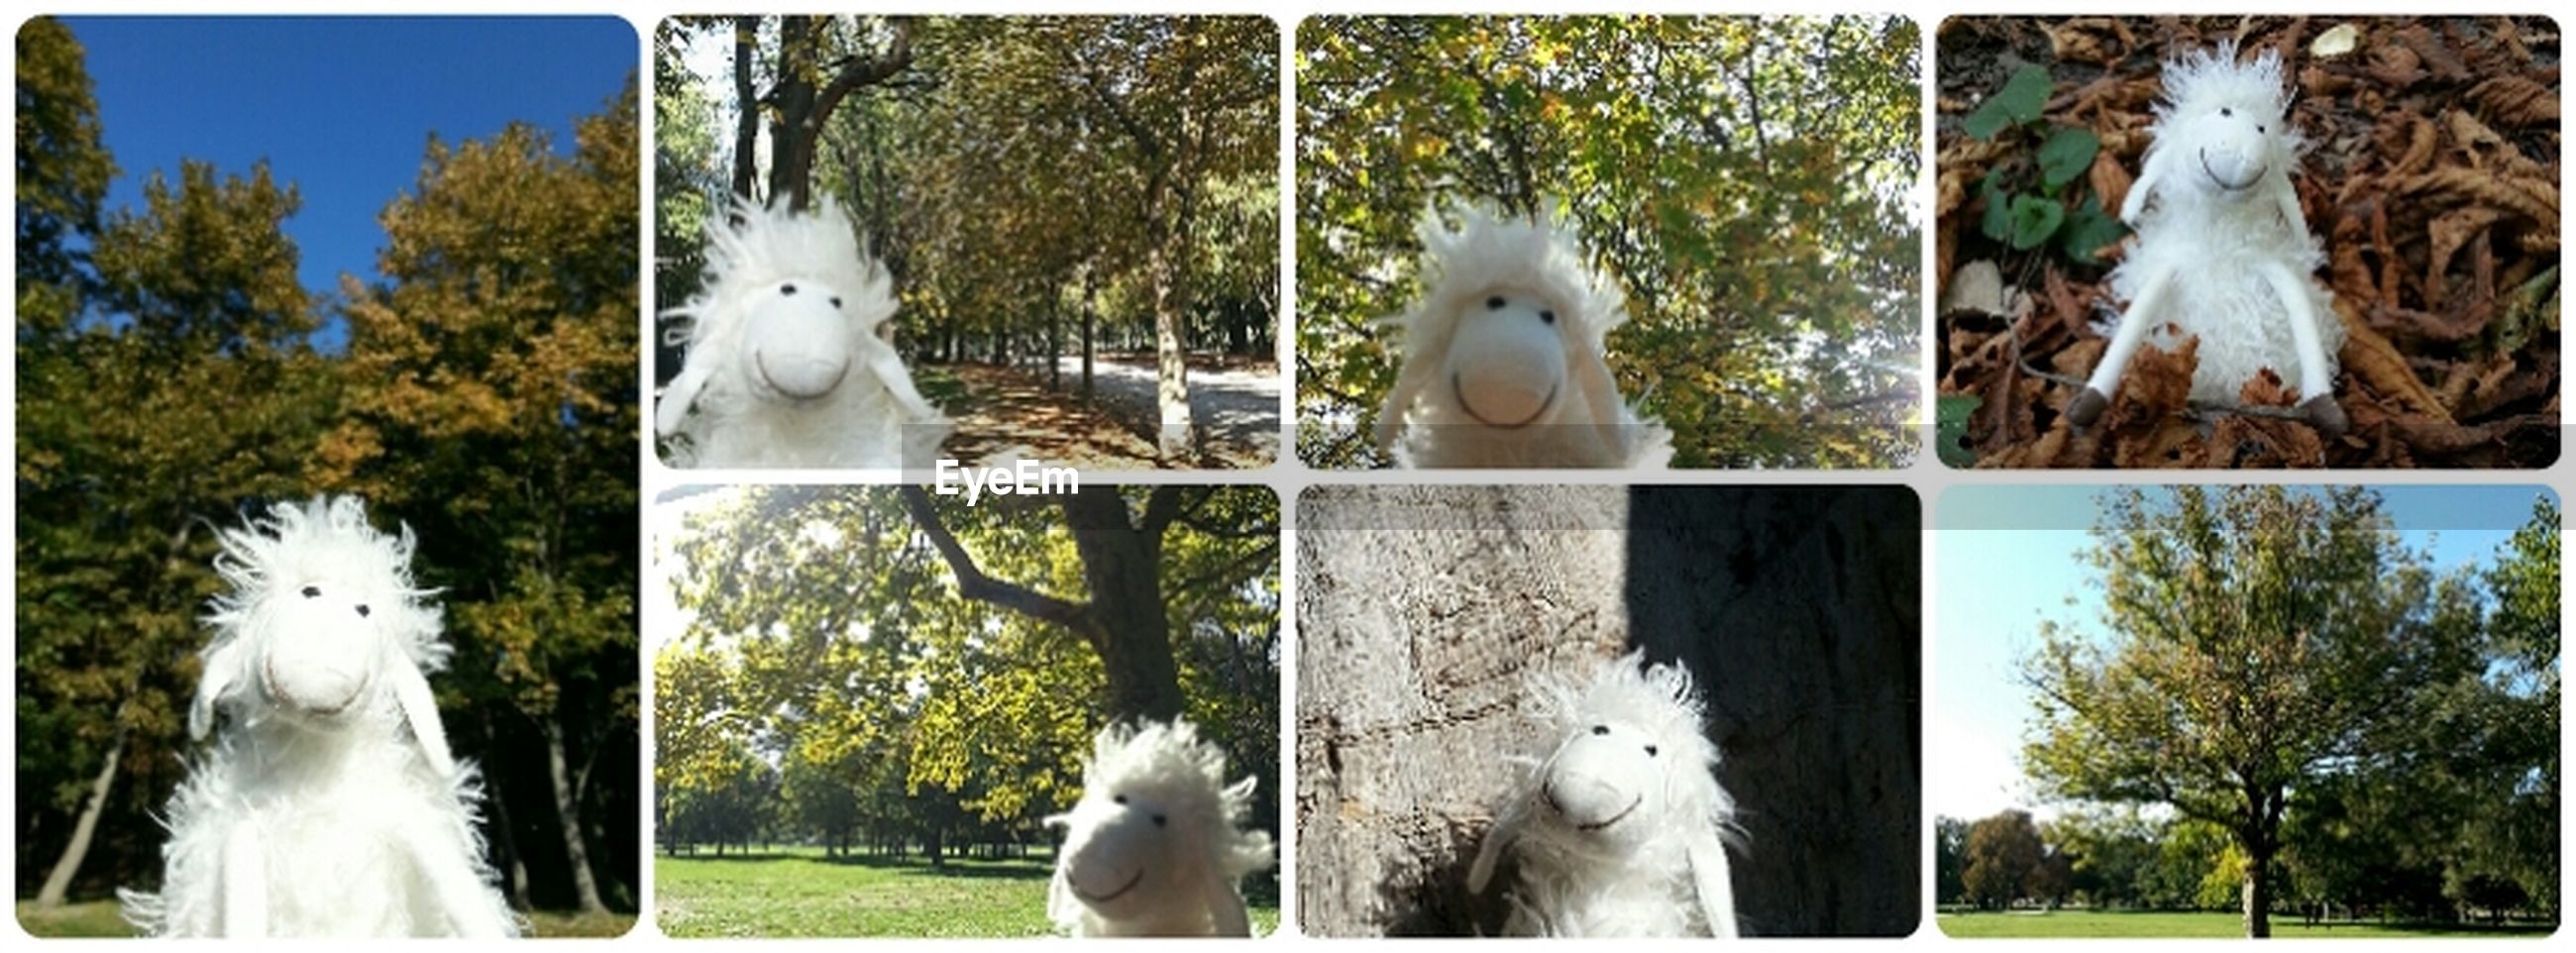 sculpture, statue, human representation, tree, white color, art and craft, art, animal representation, creativity, animal themes, park - man made space, day, bird, white, outdoors, no people, nature, close-up